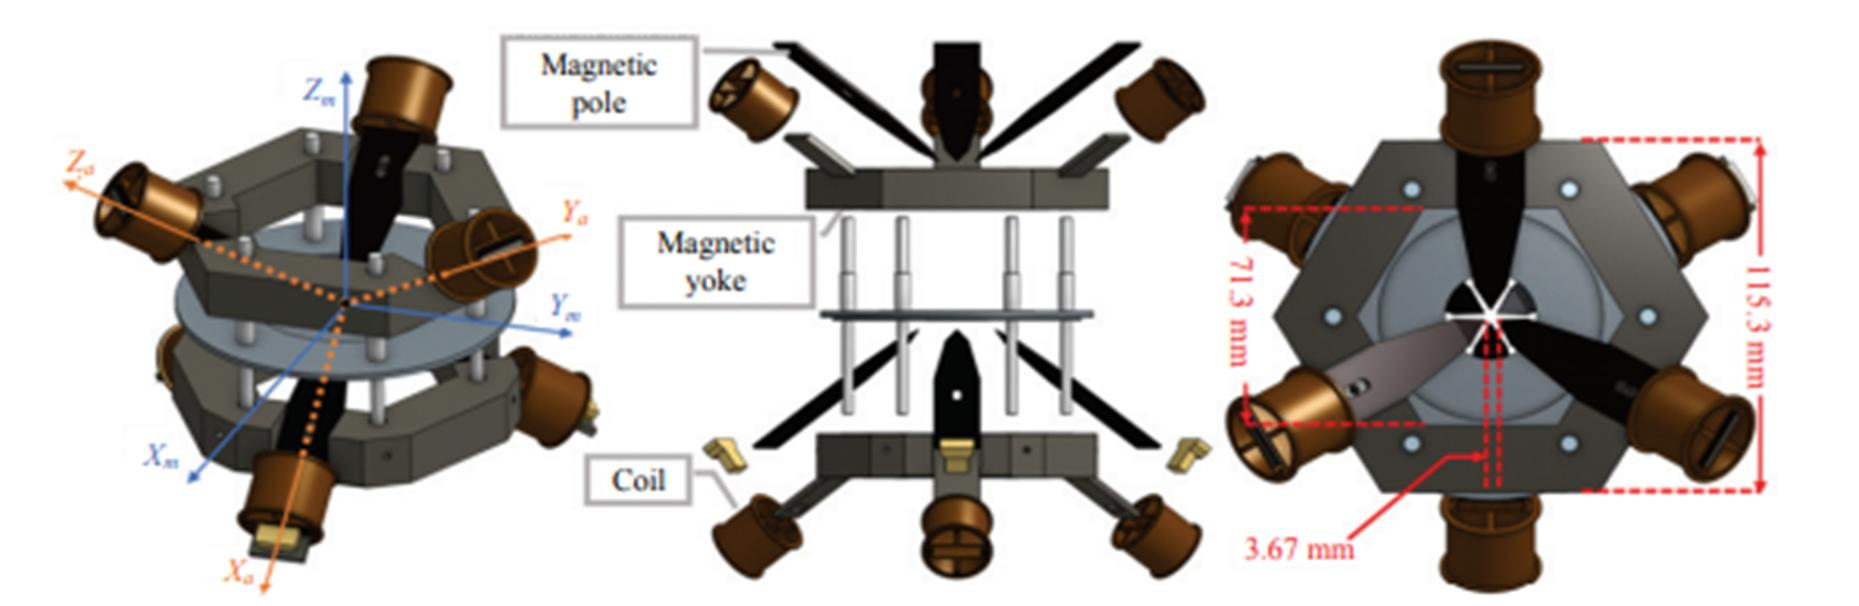 Closed-loop Control Using High Power Hexapole Magnetic Tweezers for 3D Micromanipulation